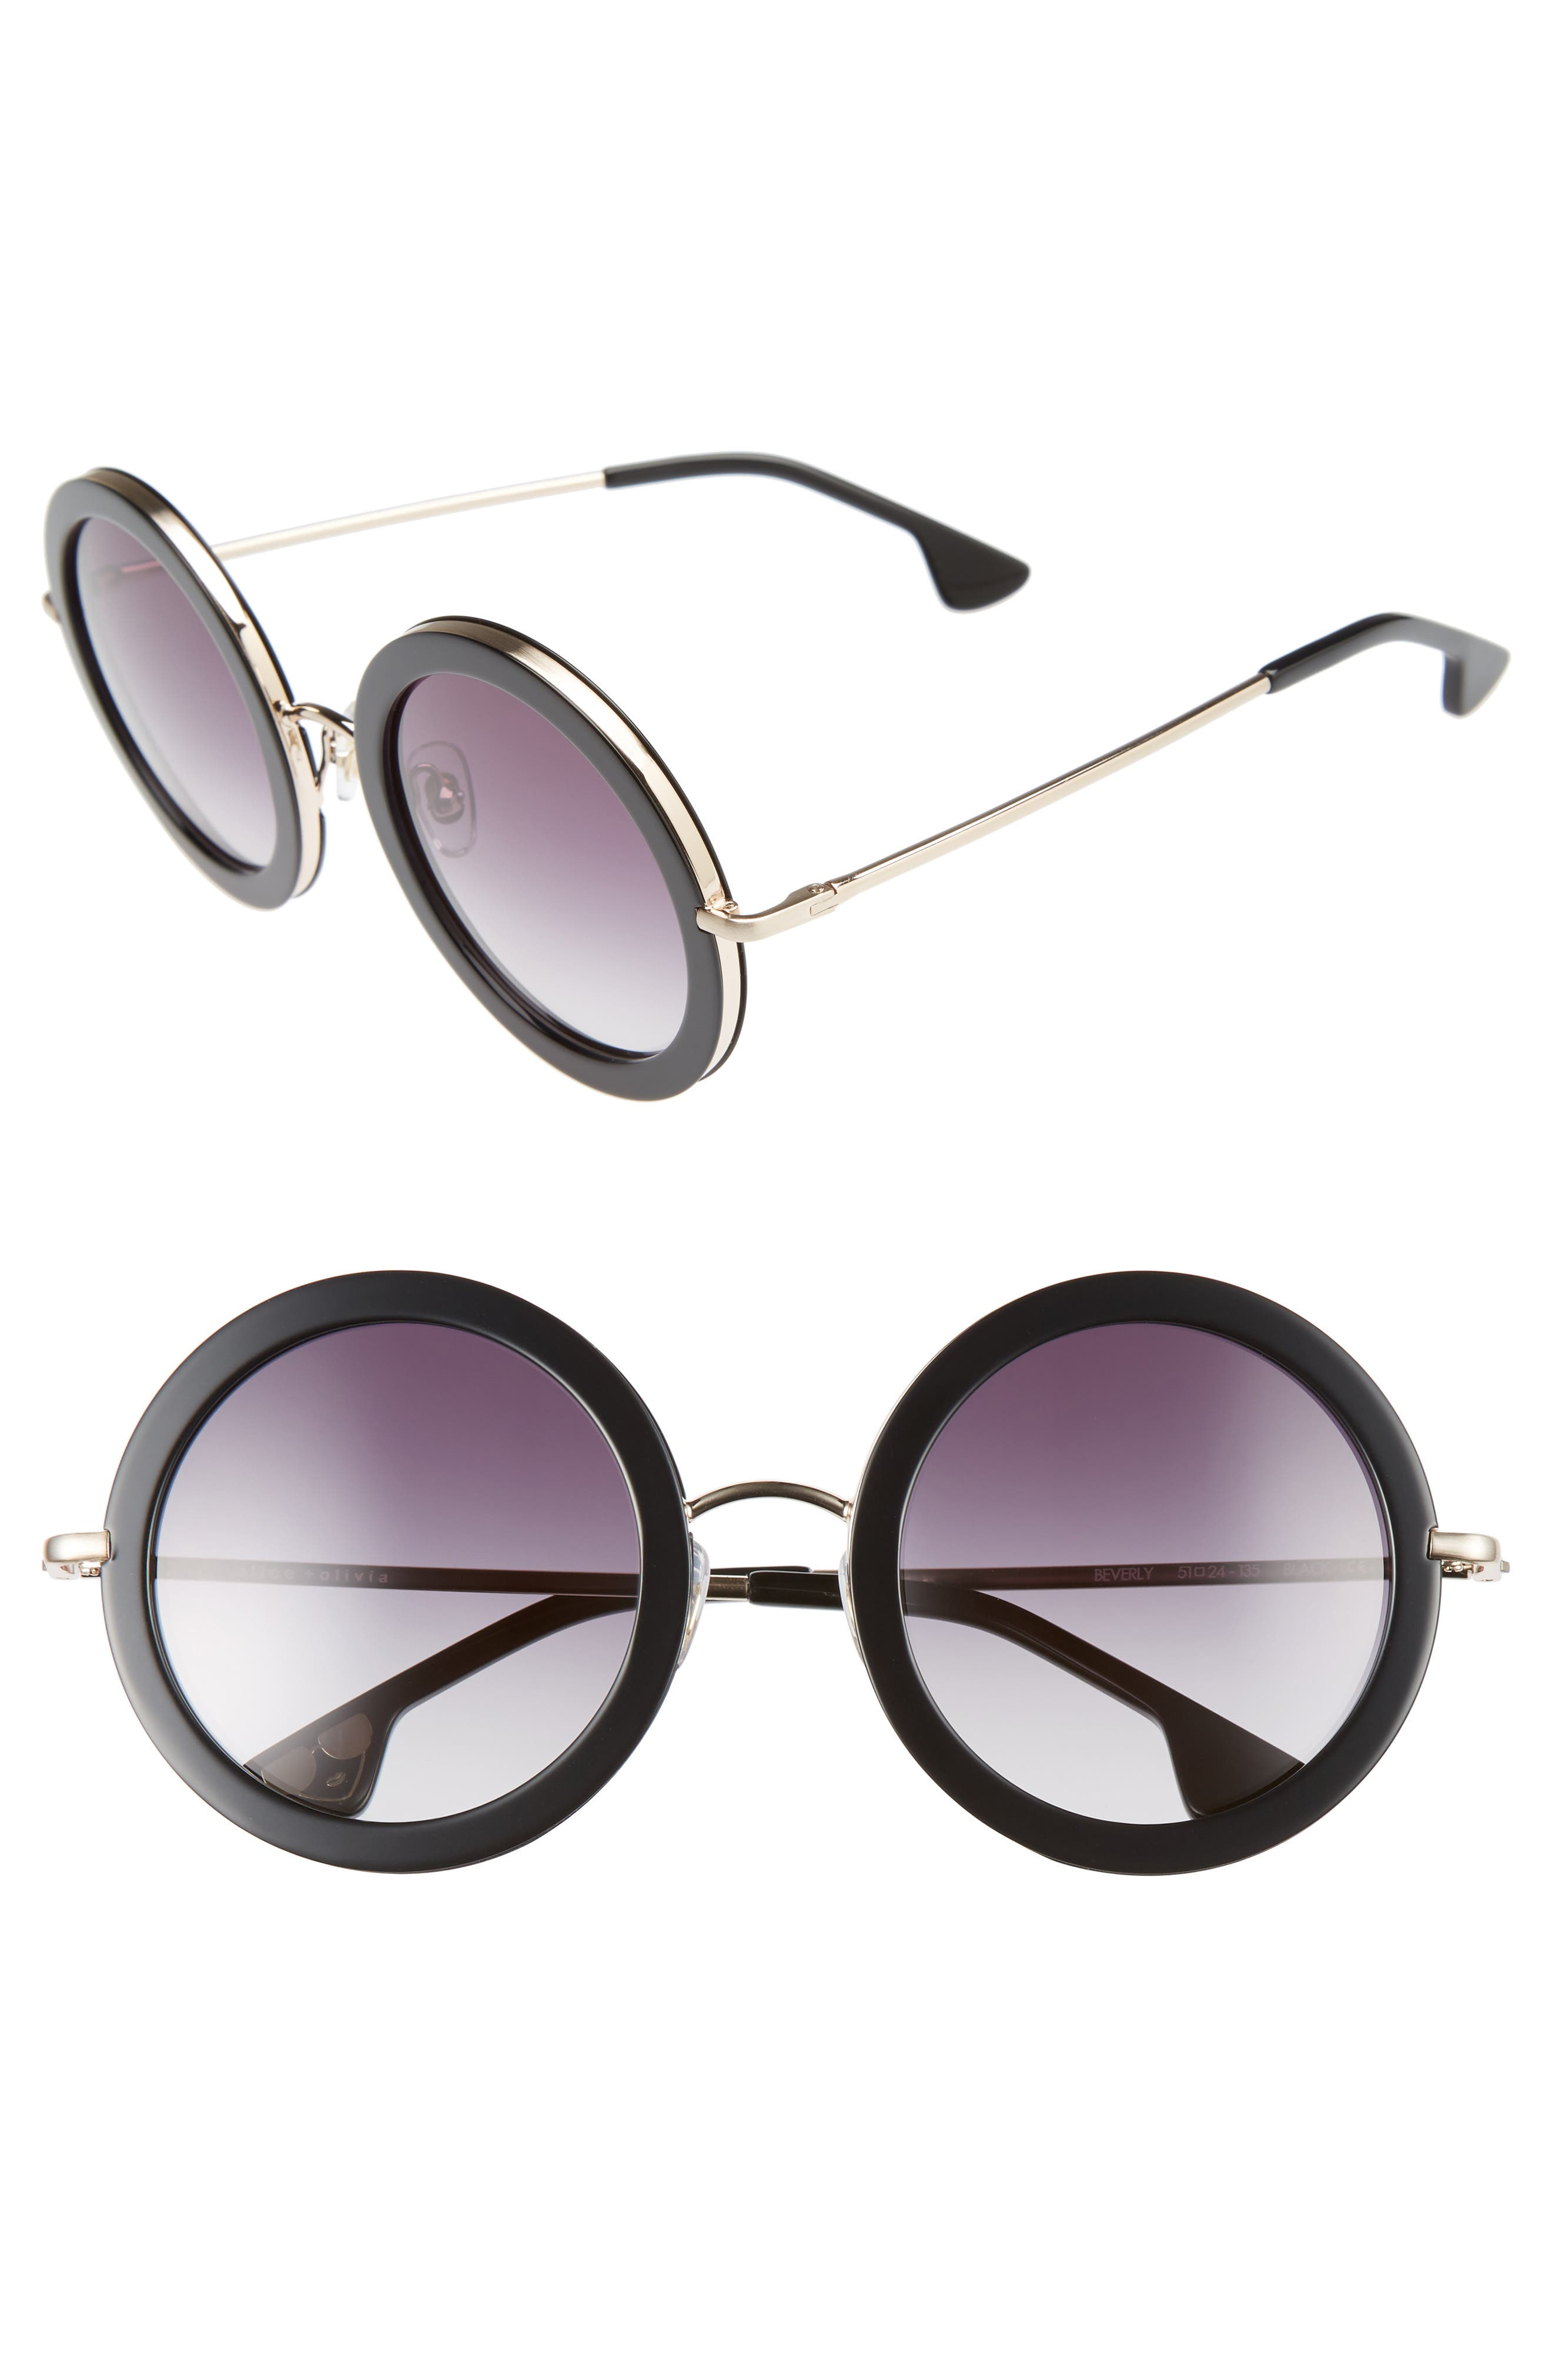 Beverly 51mm Special Fit Round Sunglasses,                         Main,                         color, 001